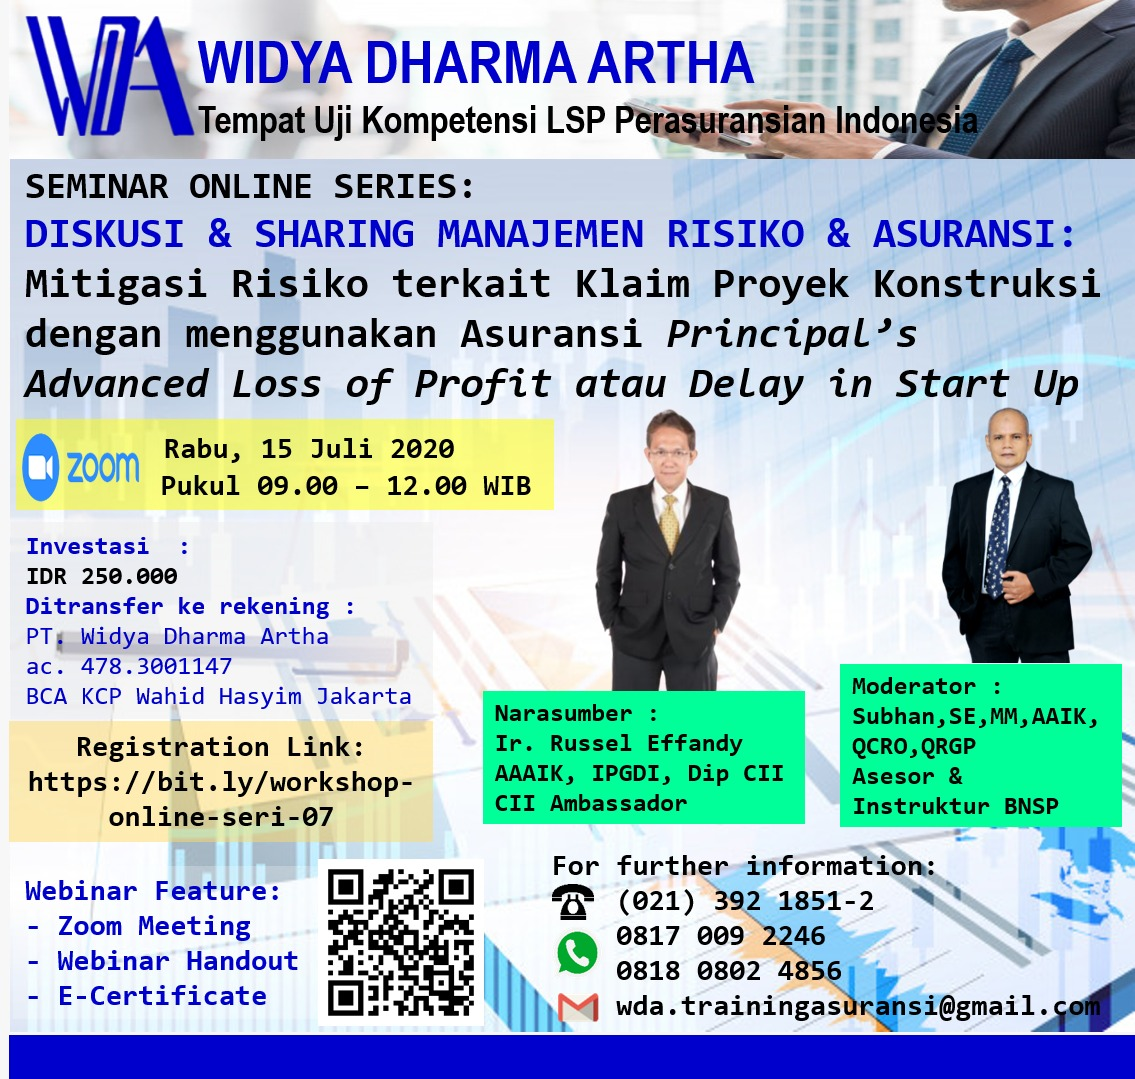 wda-webinar-principals-alop-and_or-dsu-15072020-0900-1200